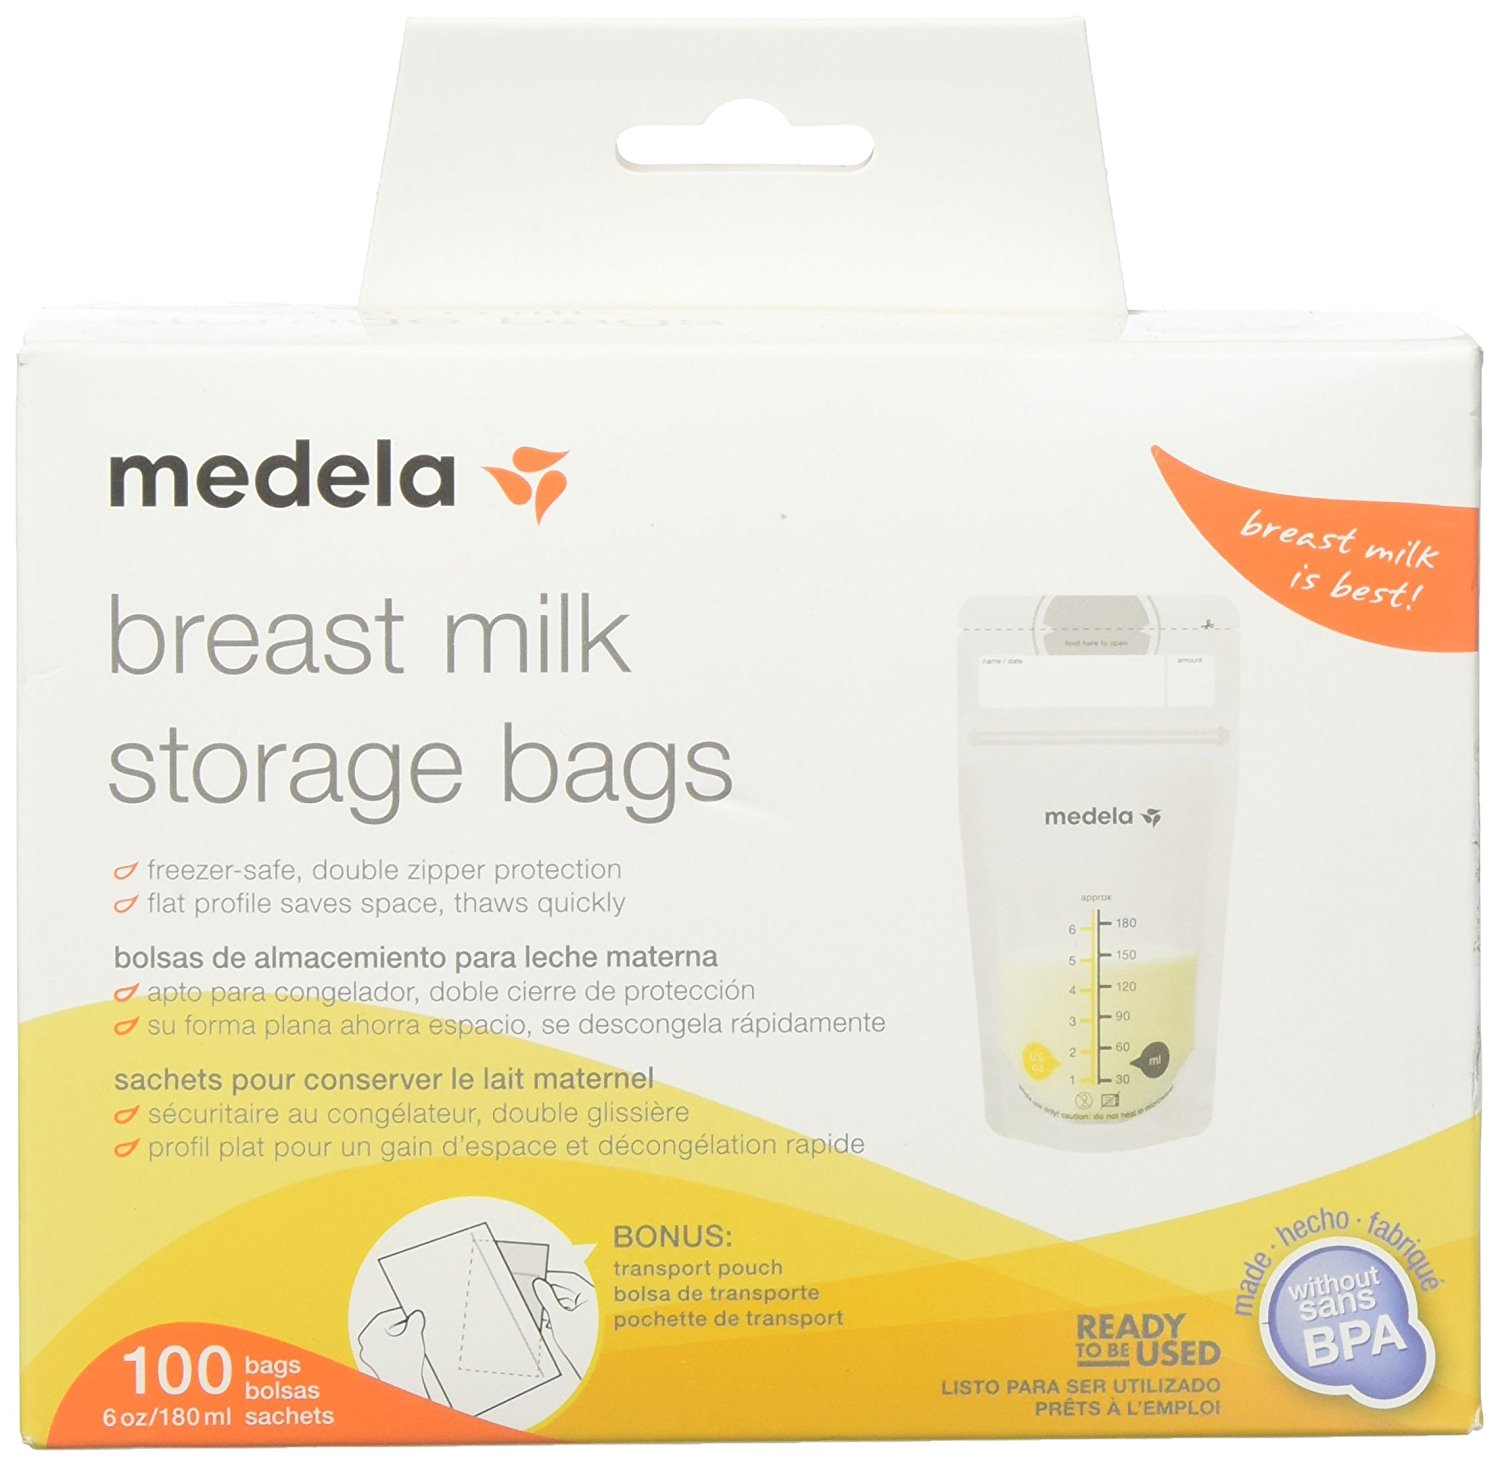 Review of Medela Breast Milk Storage Bags